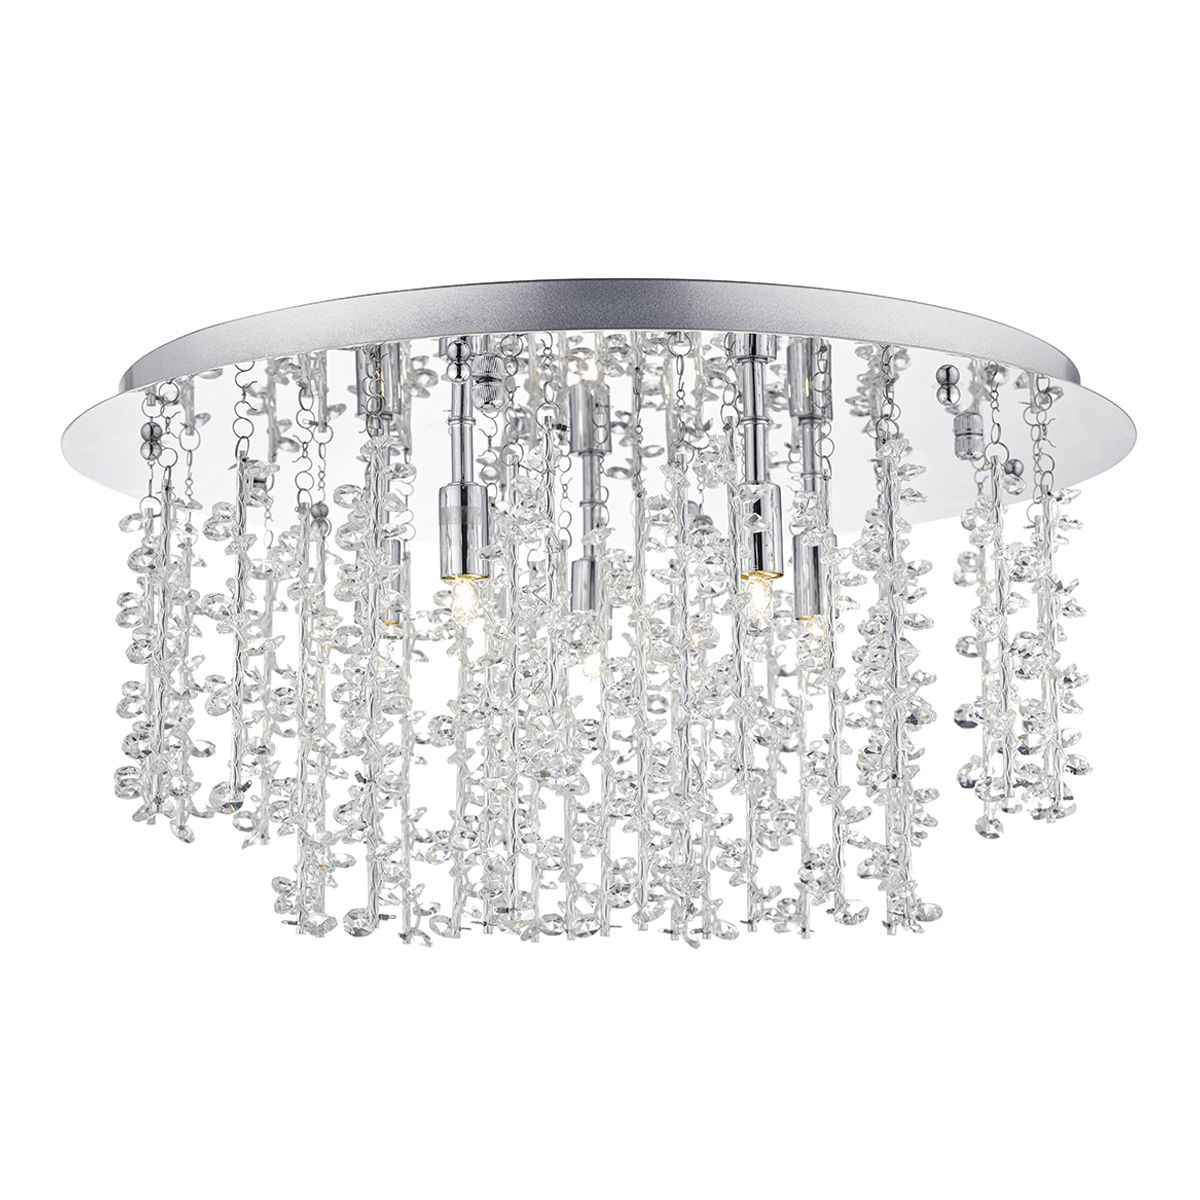 Sestina 5 Bulb Decorative Rod & Crystal Bead Flush Ceiling Light